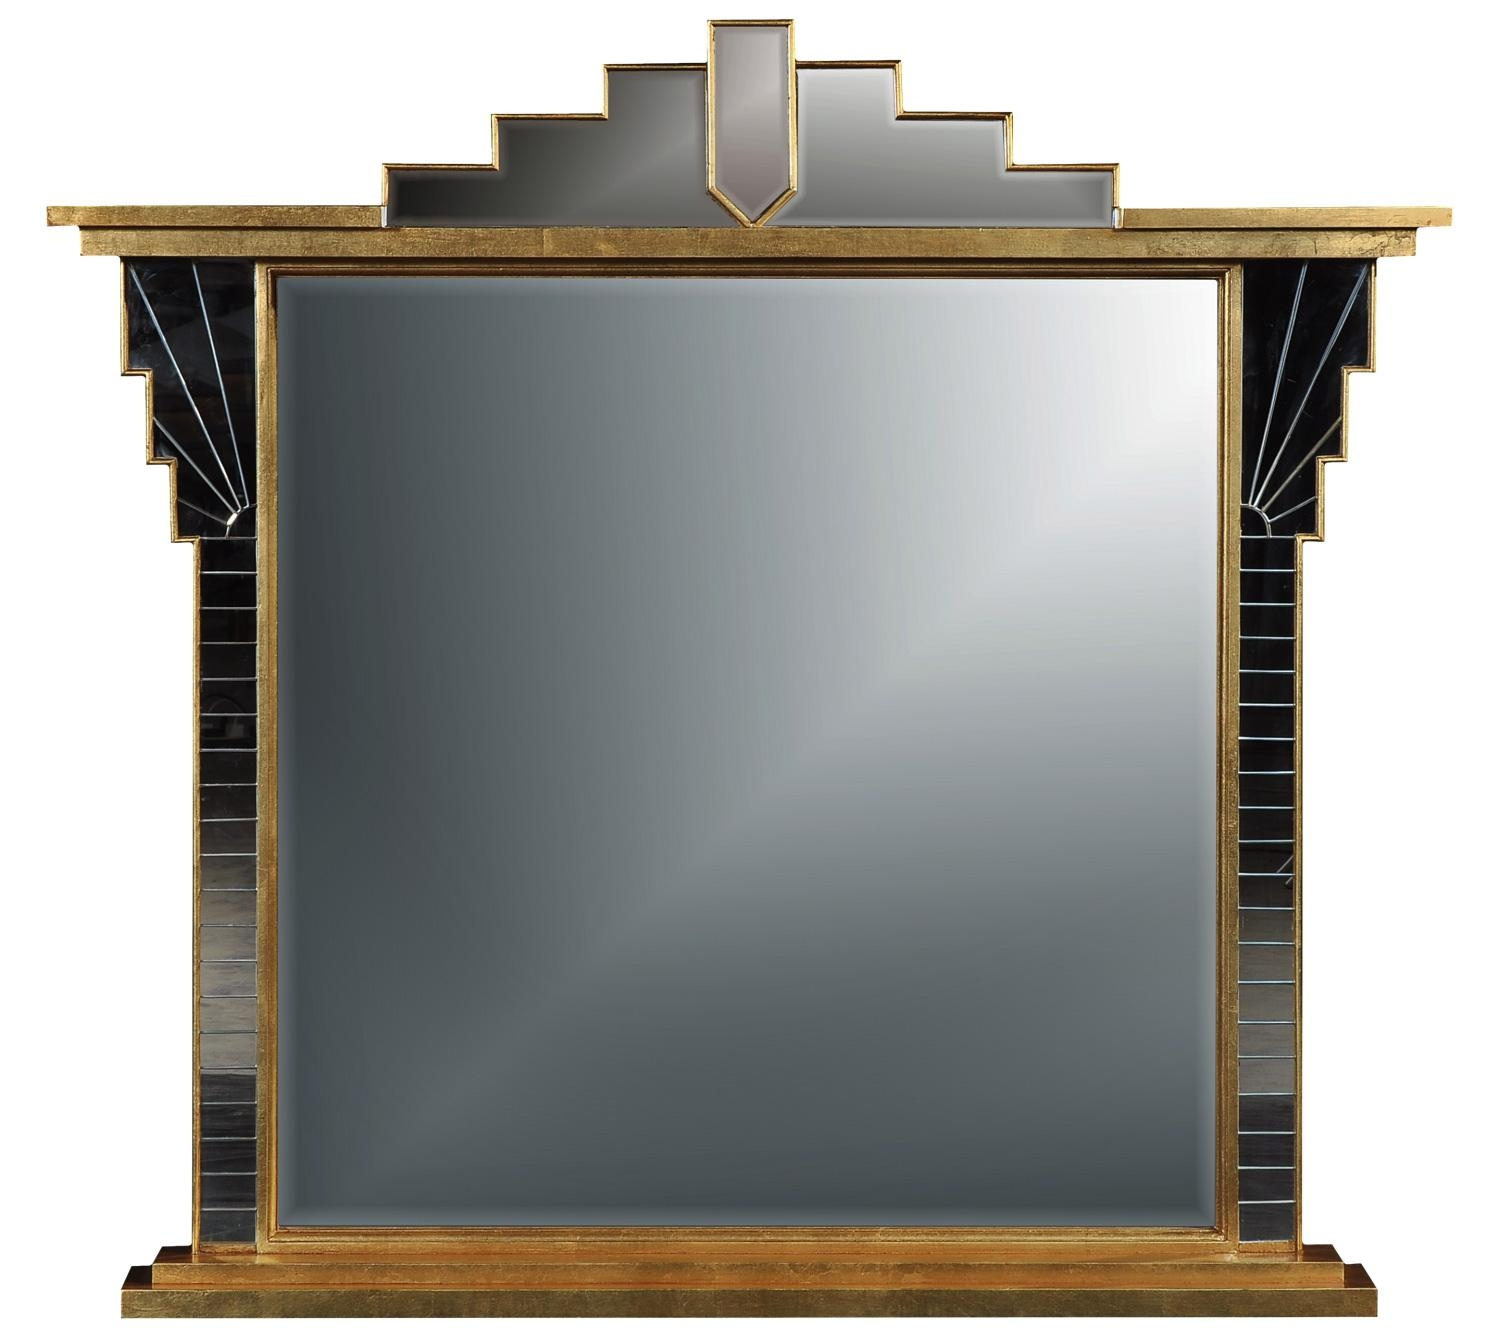 Art Deco Style Overmantel Mirror – Antique Finish, Overmantle Intended For Artdeco Mirrors (Image 6 of 20)